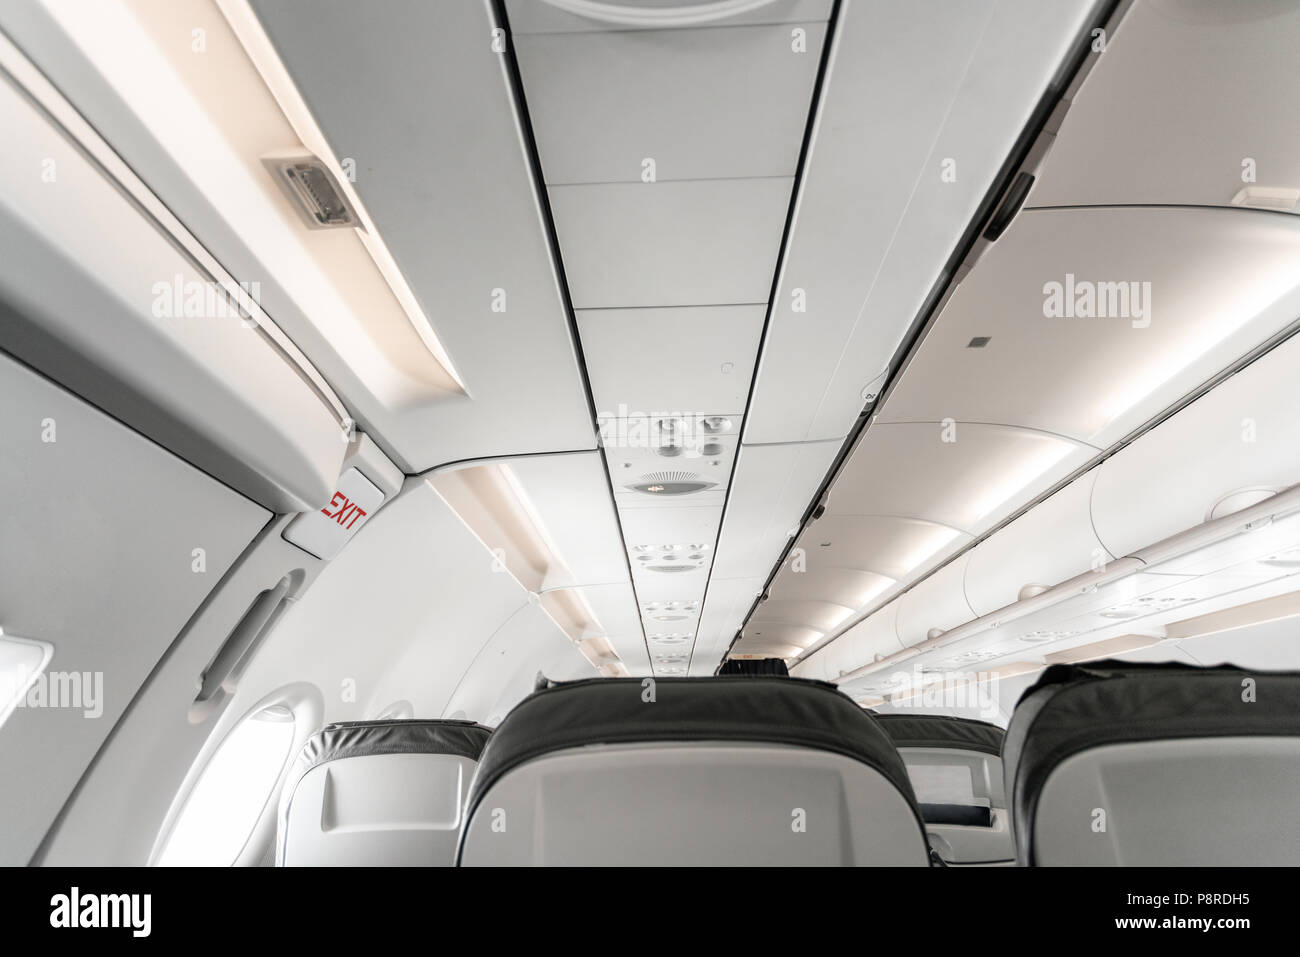 Notausgang auf ein Flugzeug, Blick aus der Ebene. Leere Flugzeug sitze in der Kabine. Moderne Transportkonzept. Flugzeuge - Internationaler Flug Stockbild